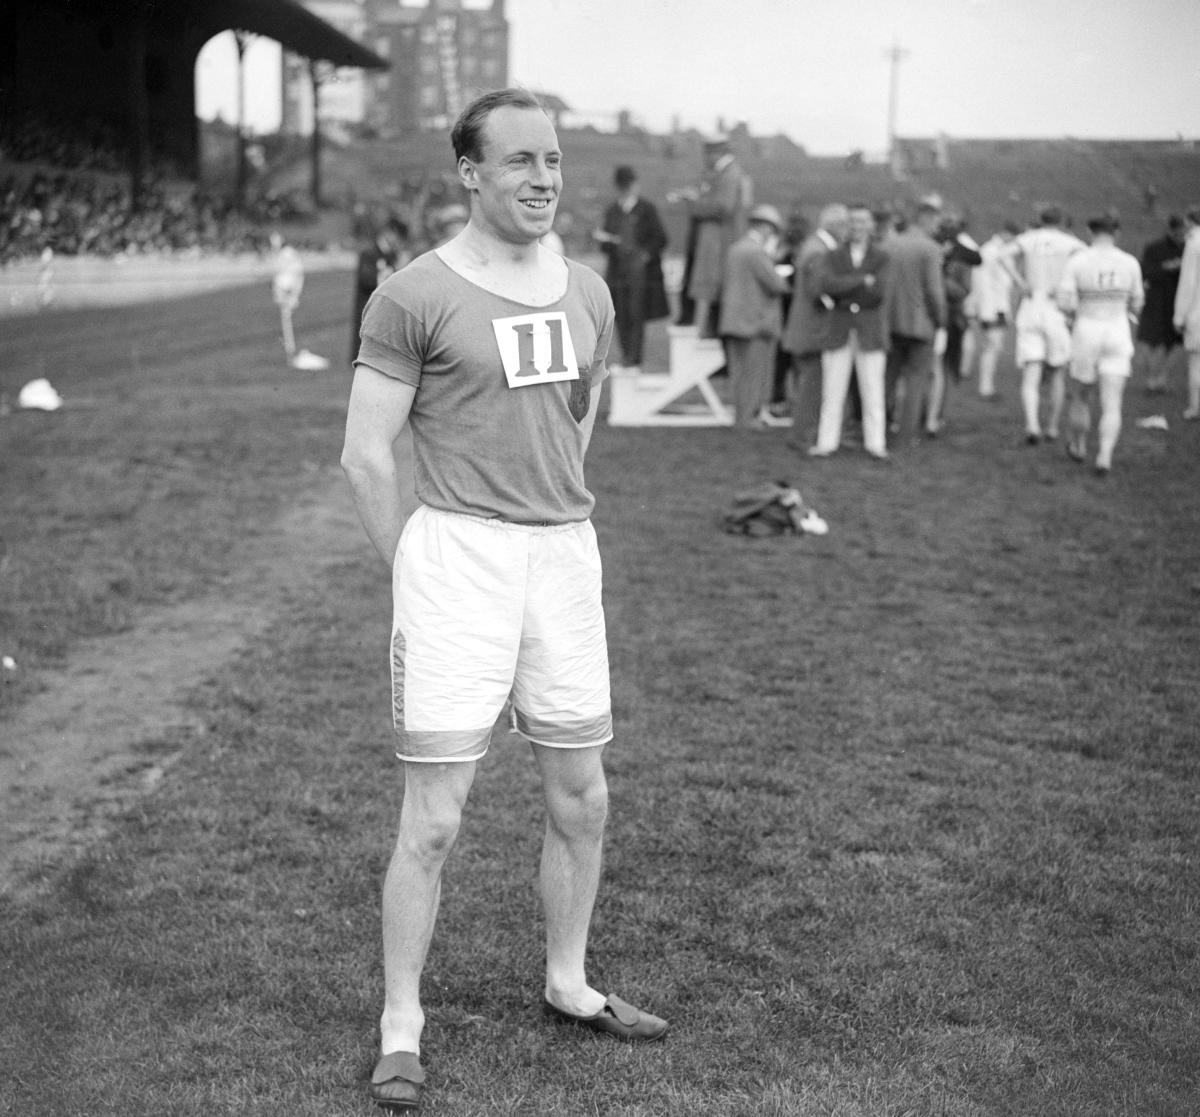 Eric Liddell, the Scottish missionary who won a gold medal in the 400 meters at the 1924 Summer Olympics in Paris.